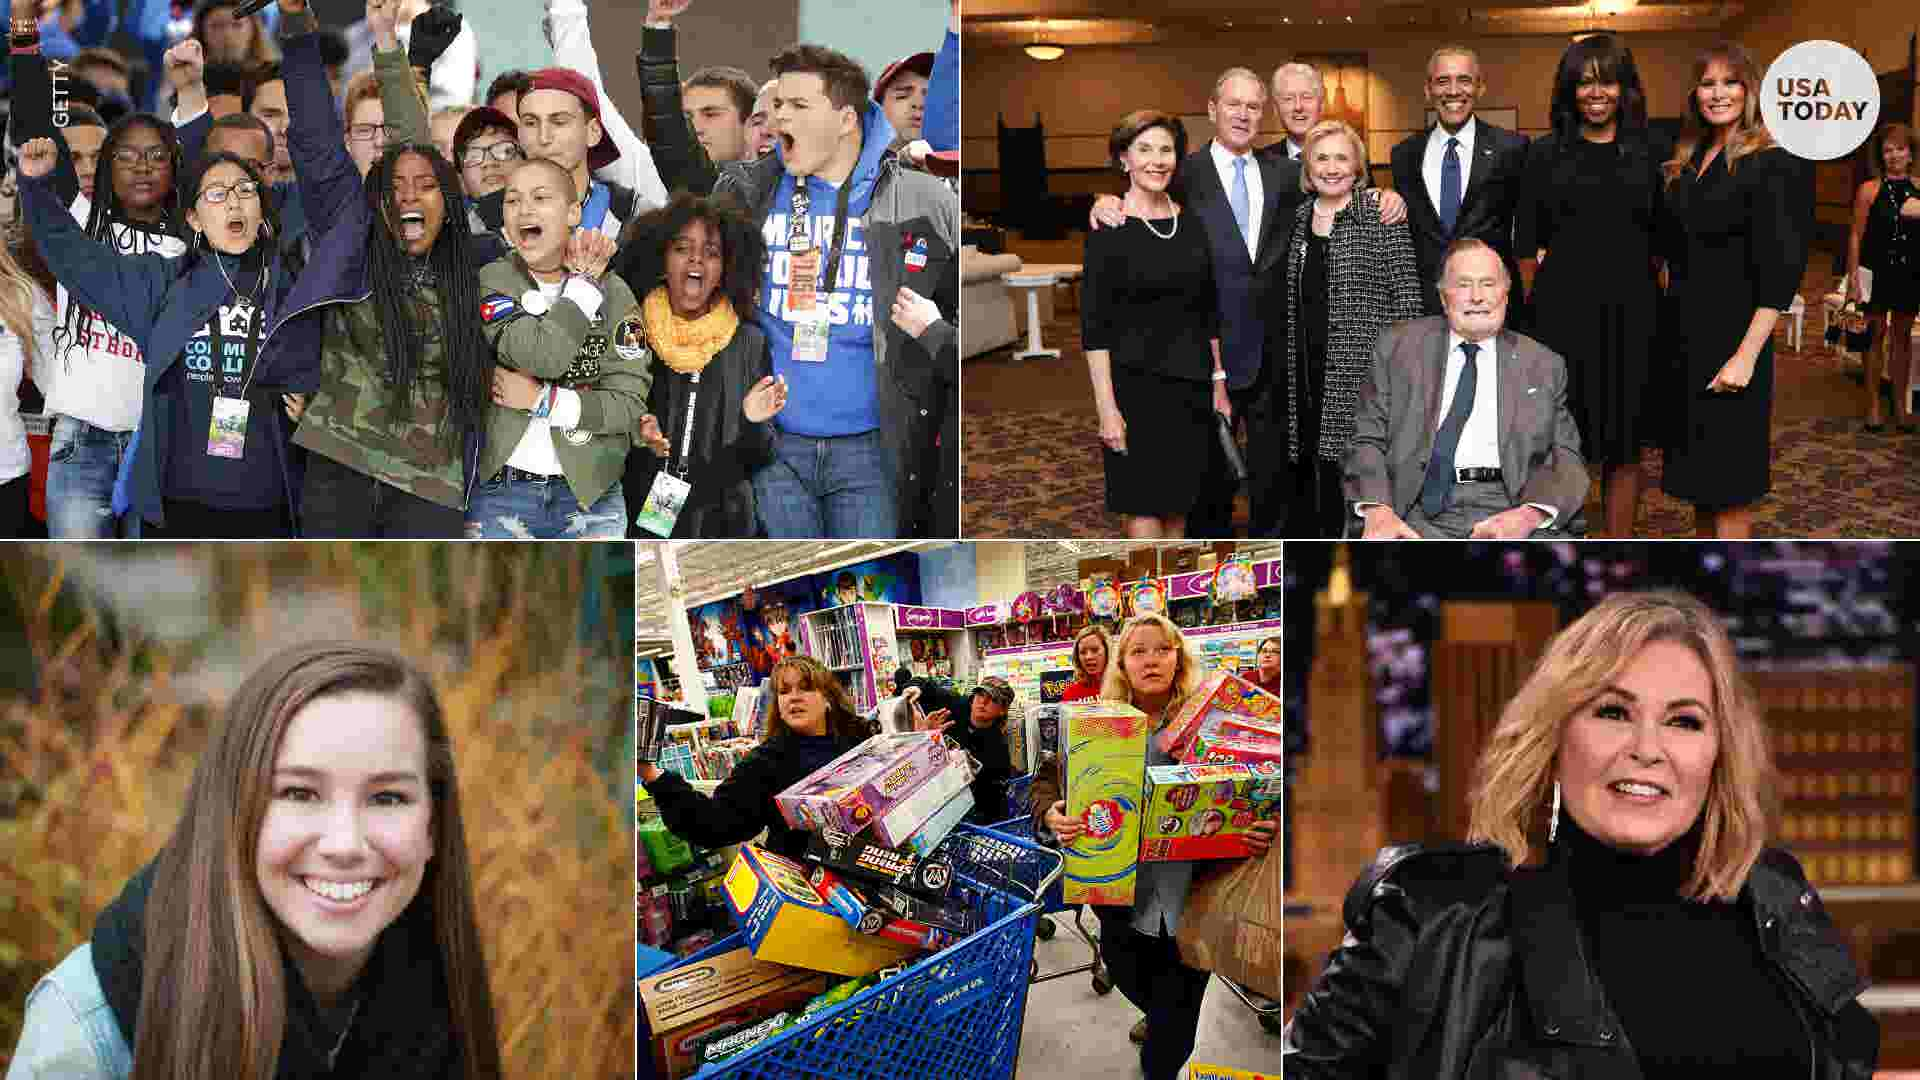 c95cb050ff25b 2018 news year in review: Stories across United States that moved us